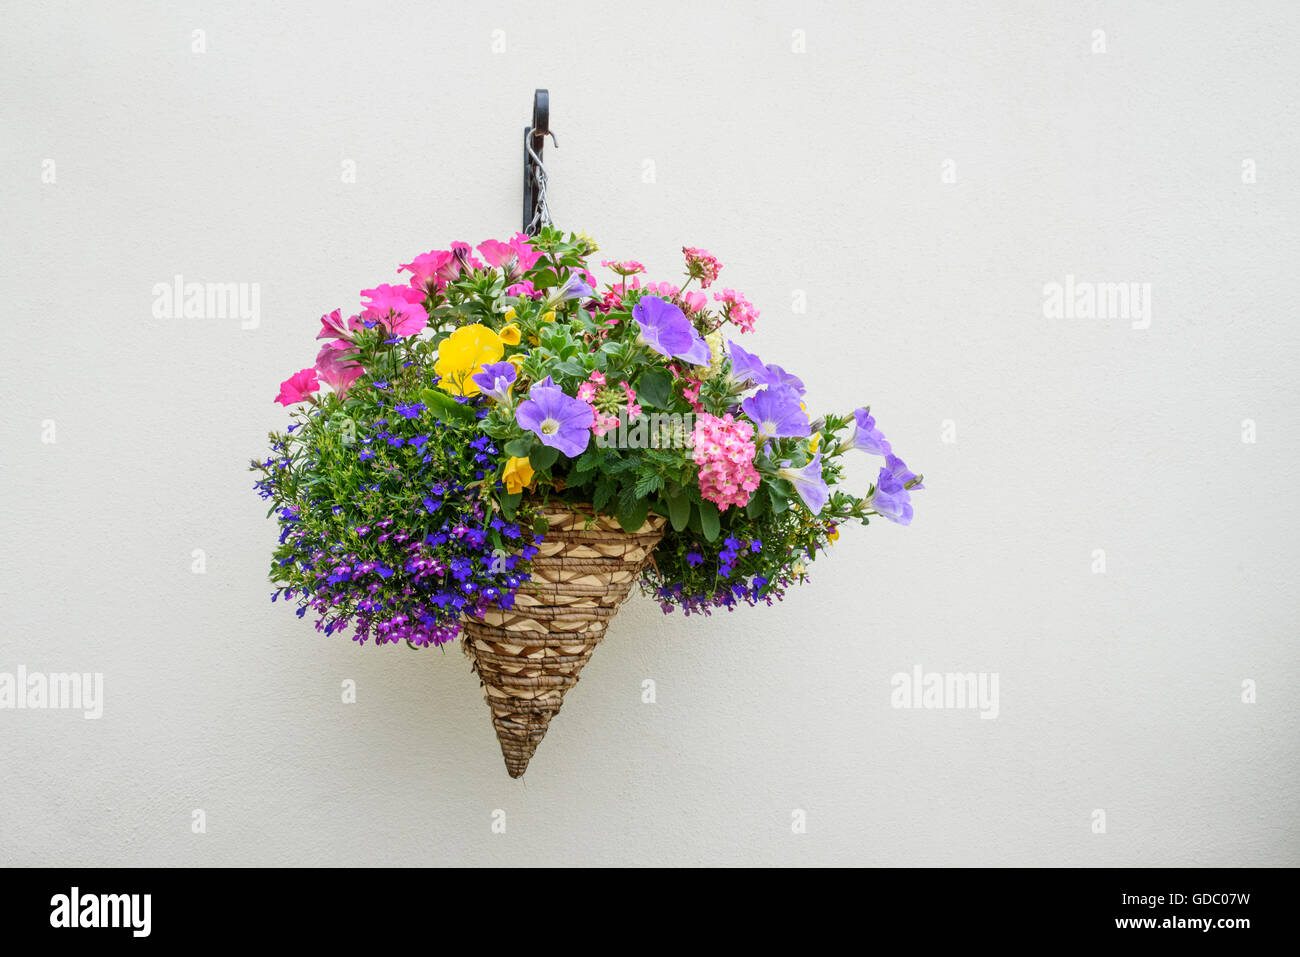 Colourful hanging conical shaped wicker flower basket on a cream coloured wall - Stock Image